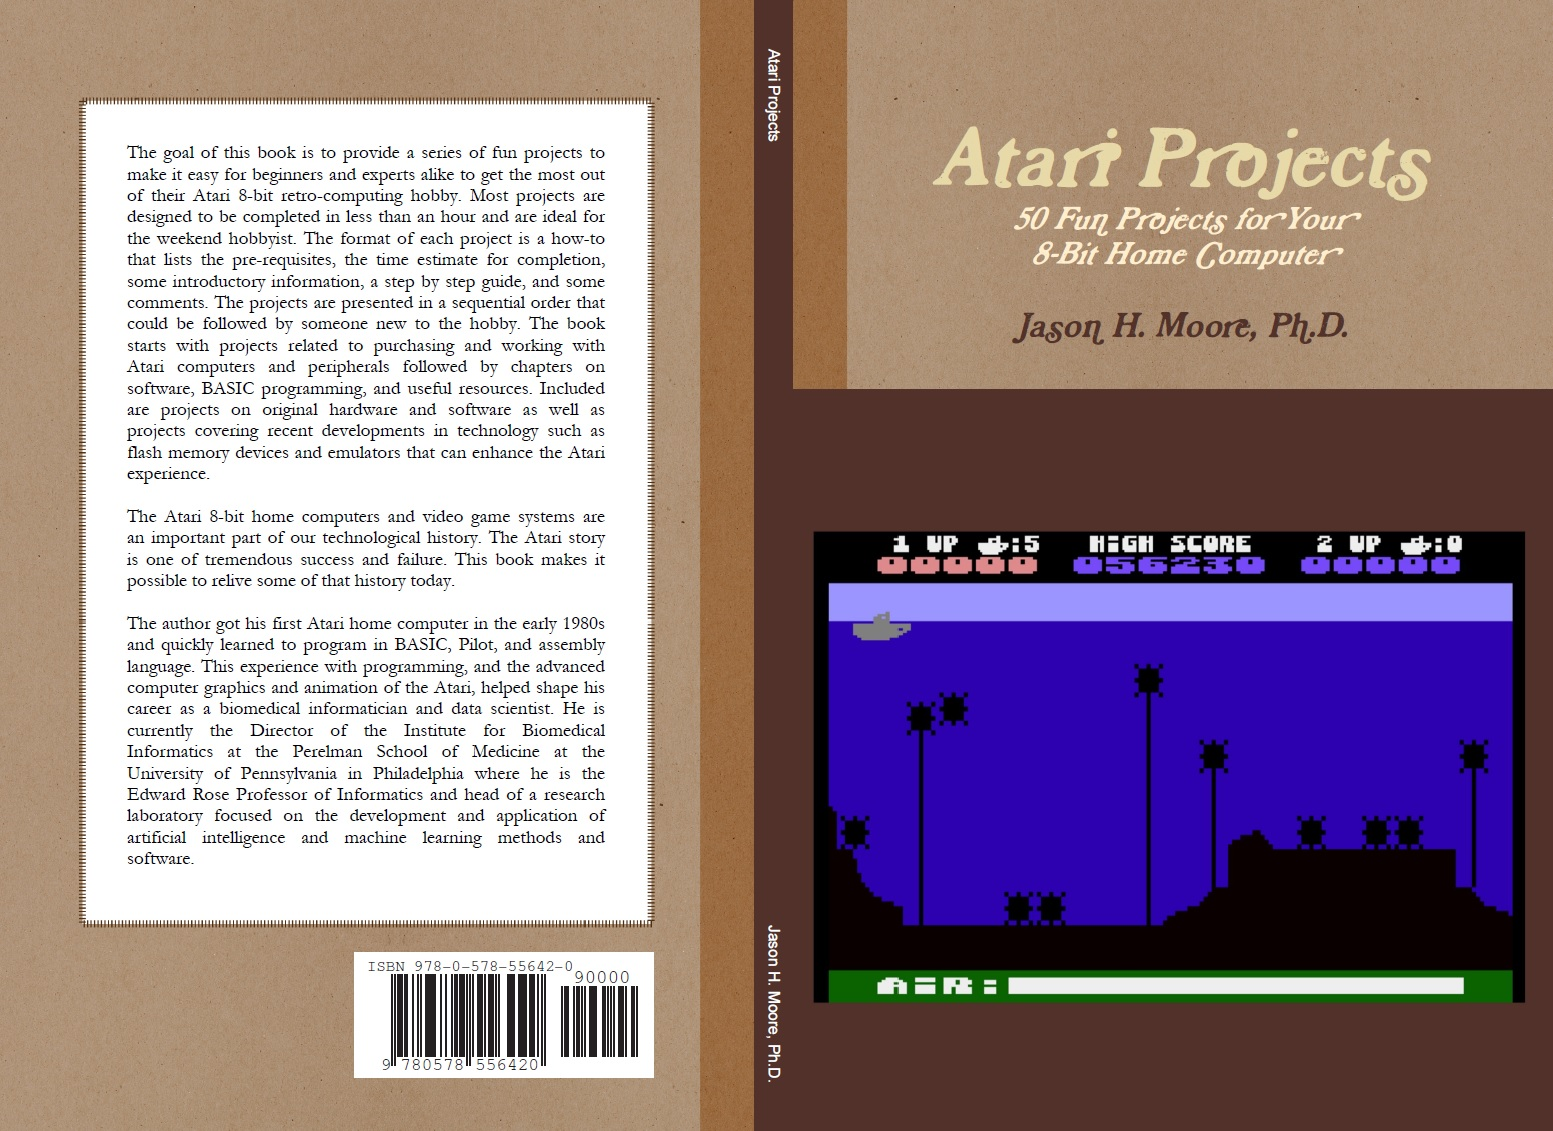 Atari Projects Book Cover